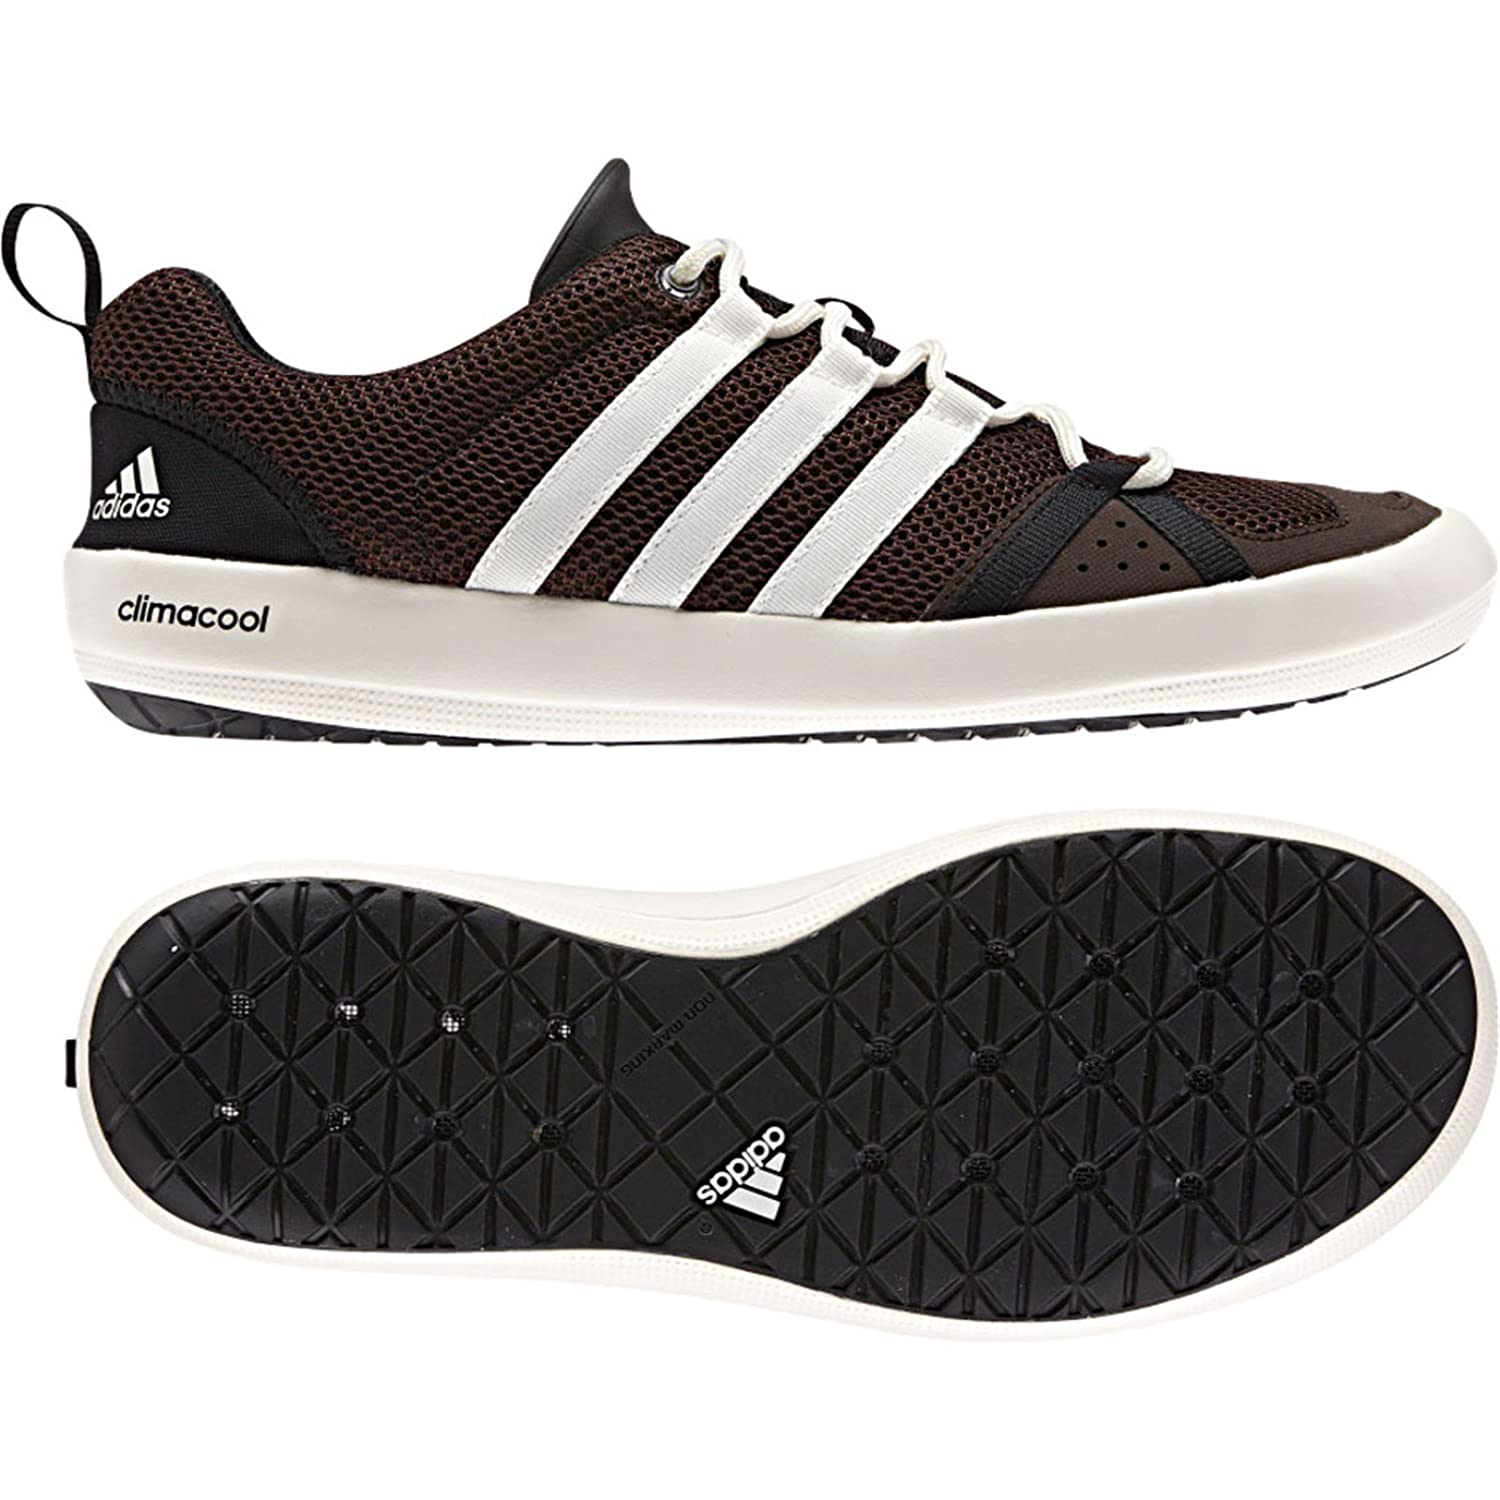 Adidas Climacool Boat Lace Shoe - Men's Mustang Brown / Chalk / Black 8.5:  Buy Online at Low Prices in India - Amazon.in